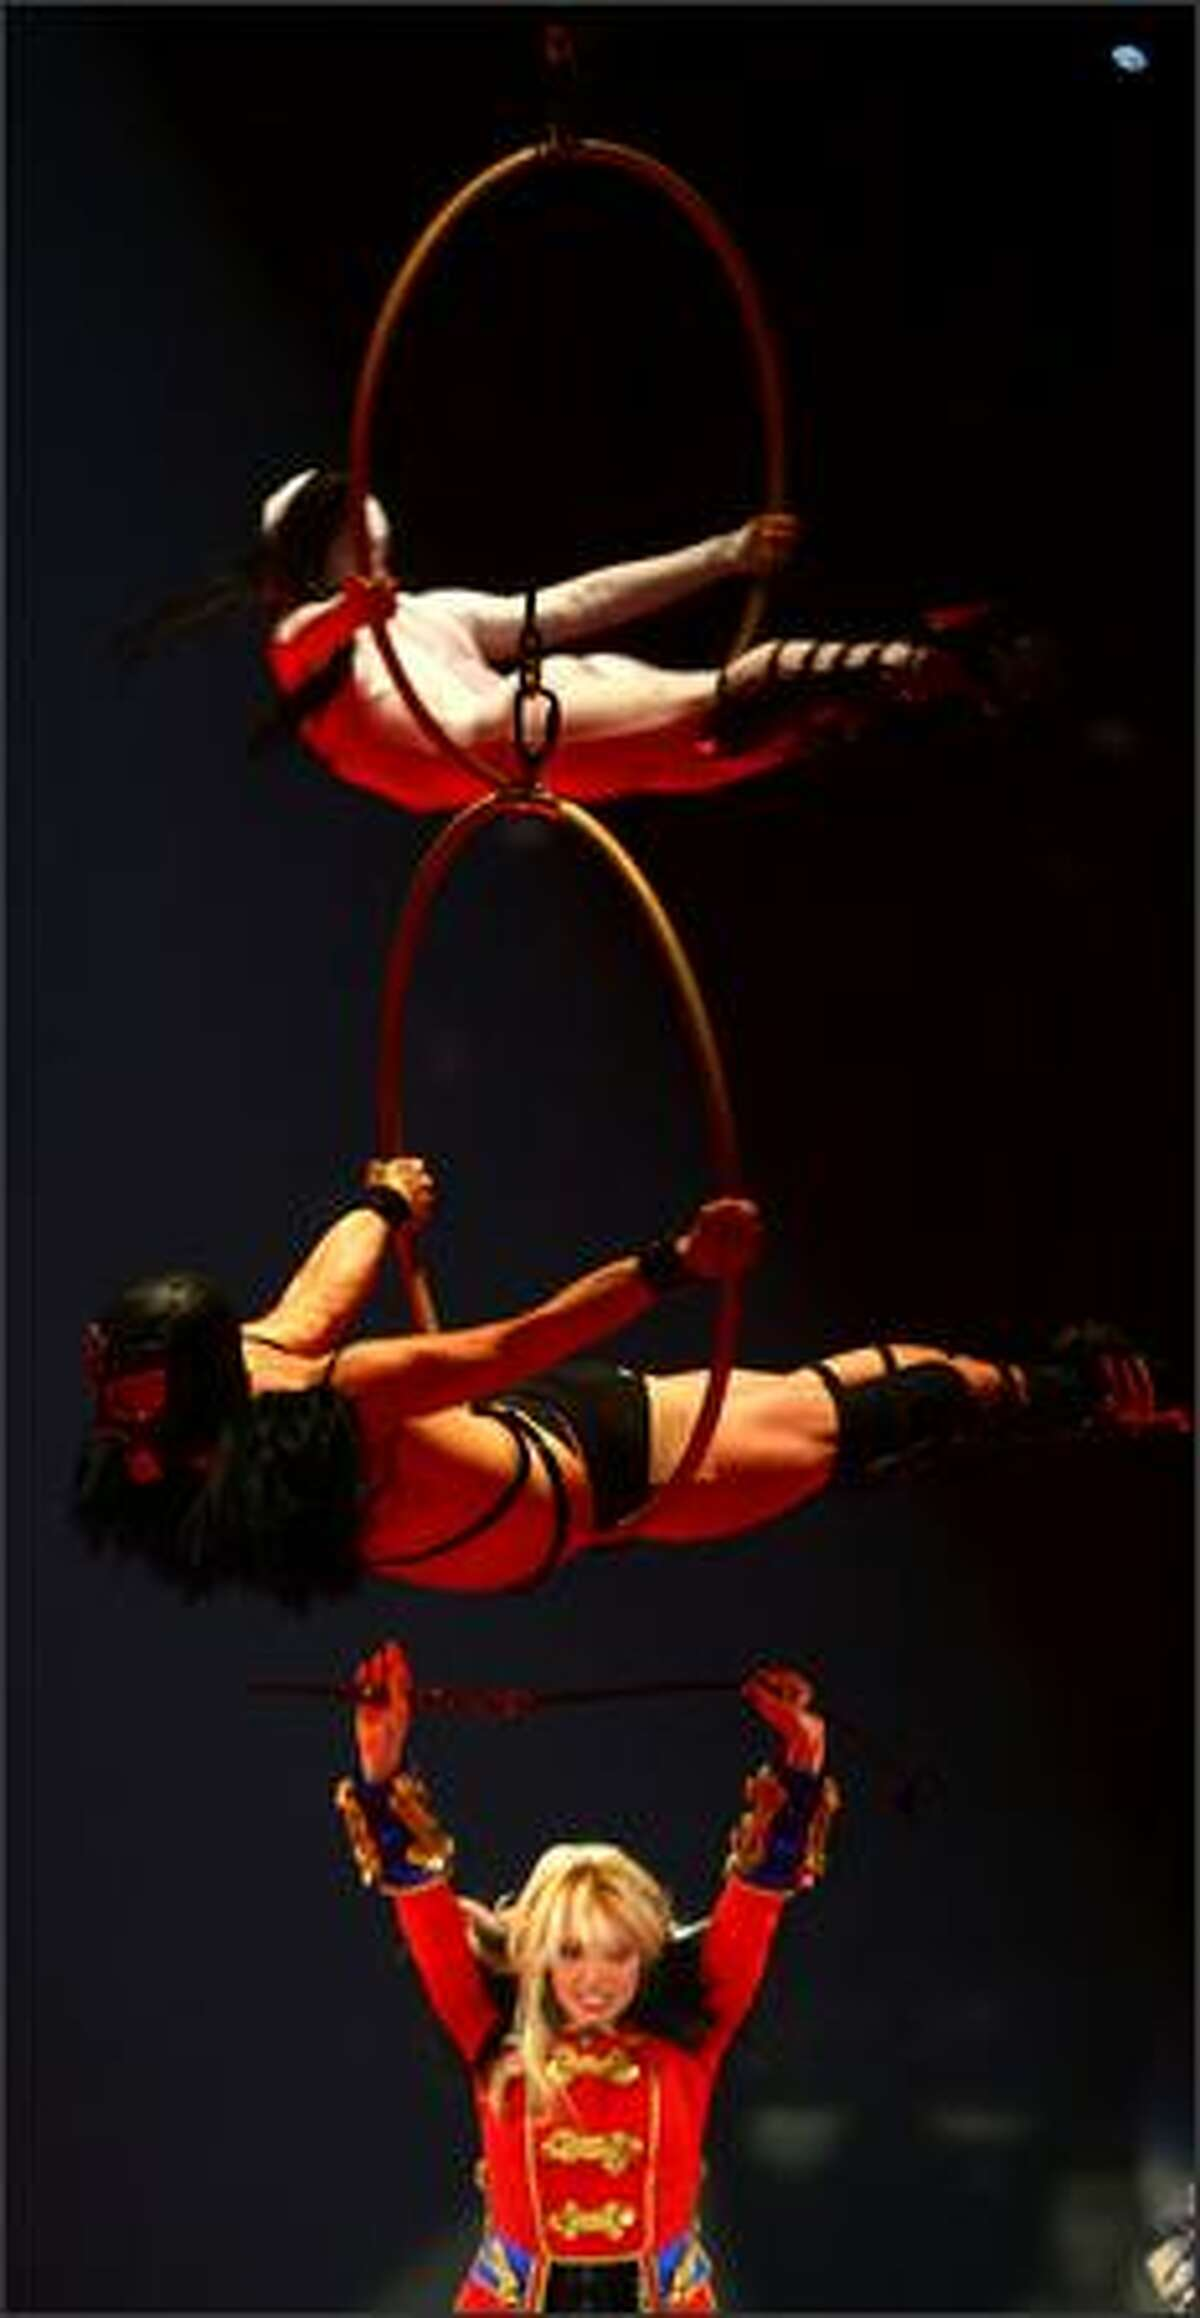 Britney Spears performs beneath acrobats from the Big Apple Circus.